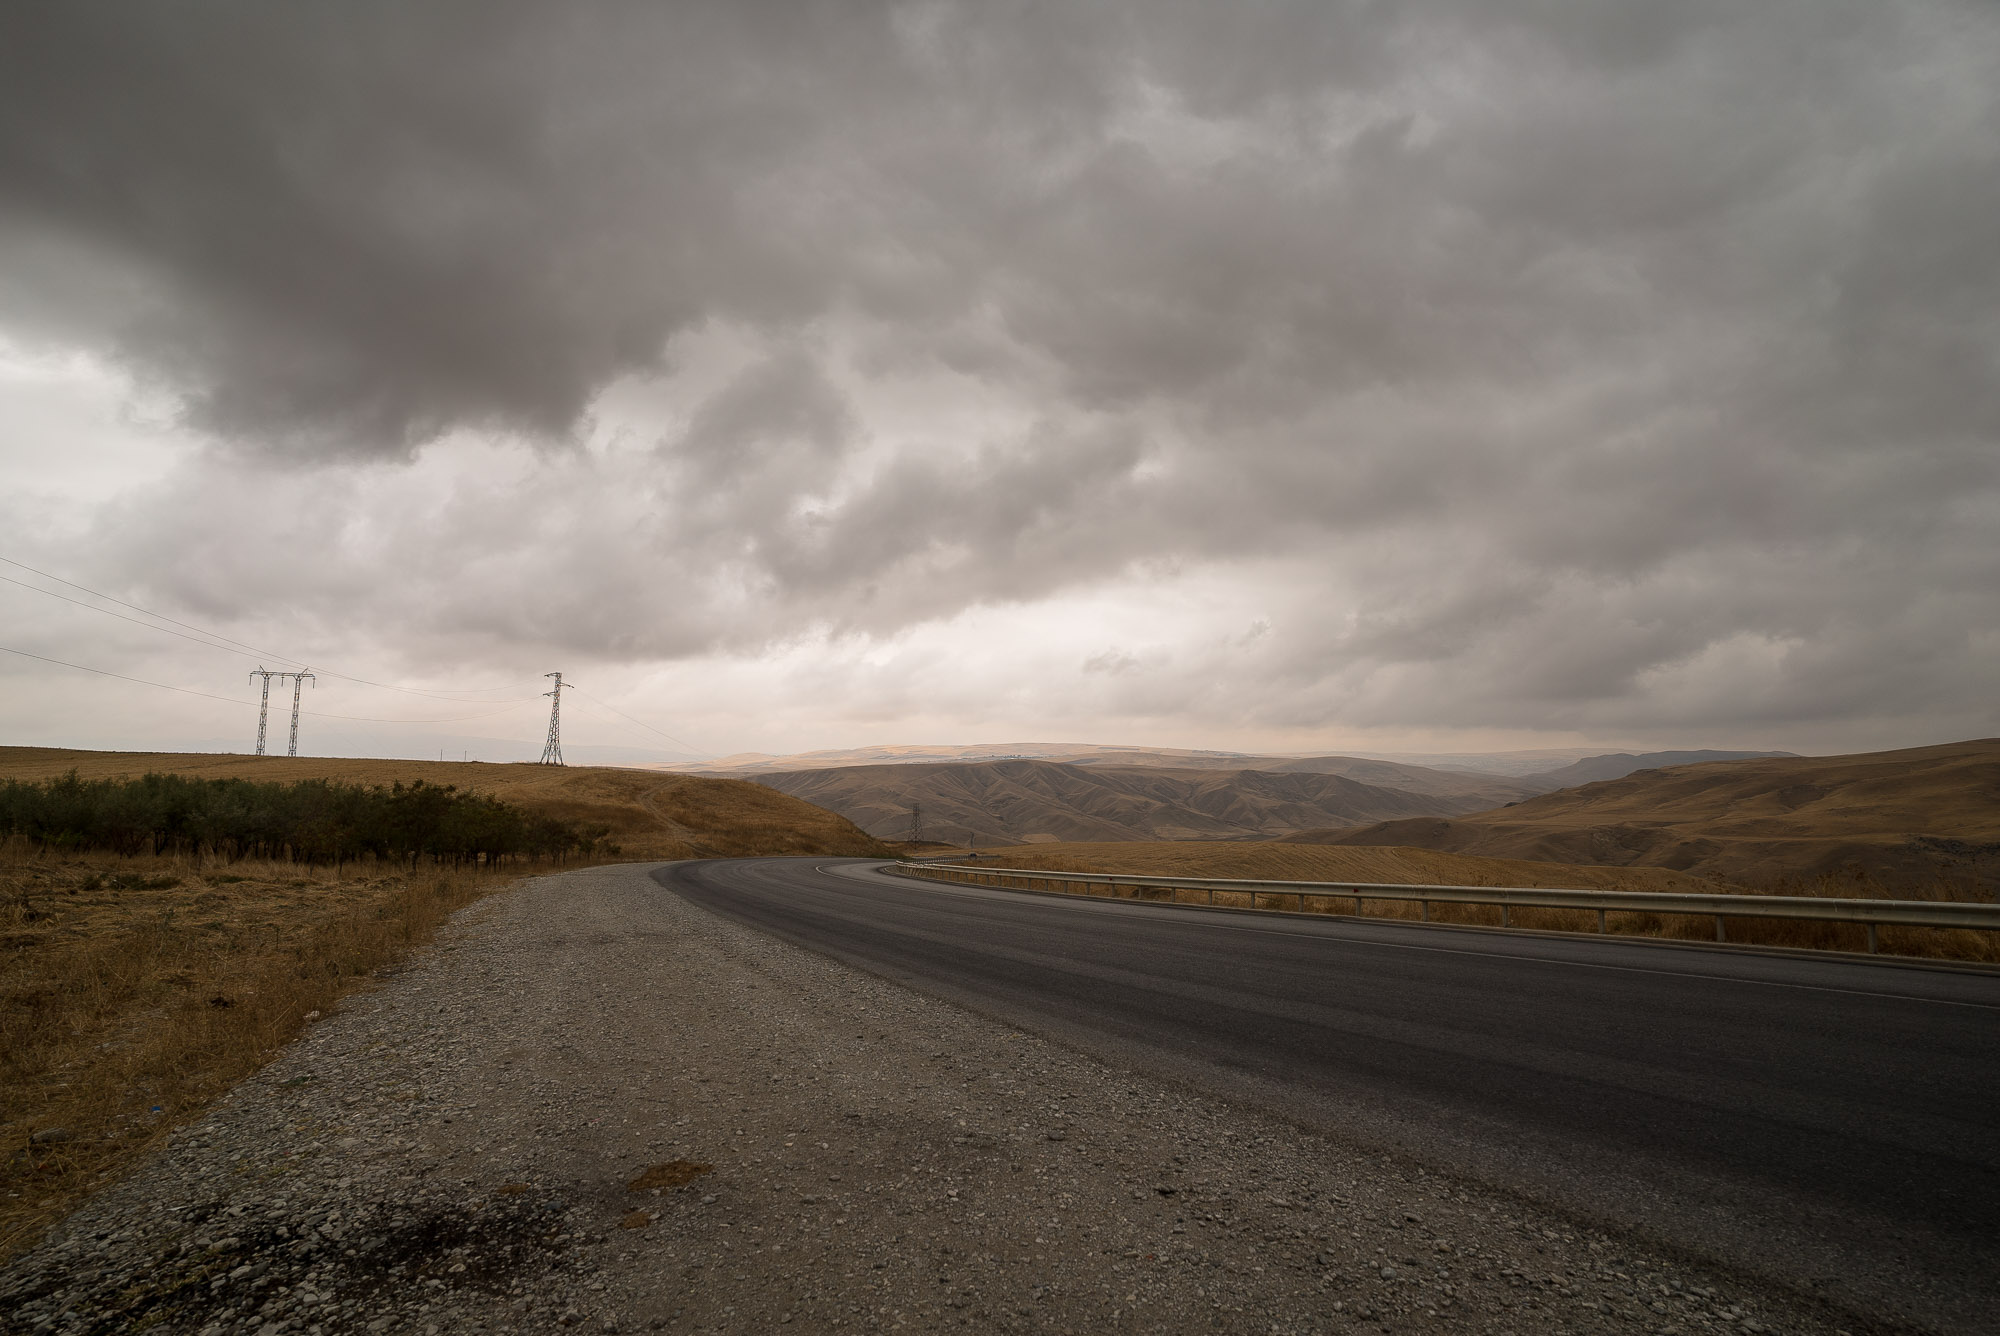 road with clouds